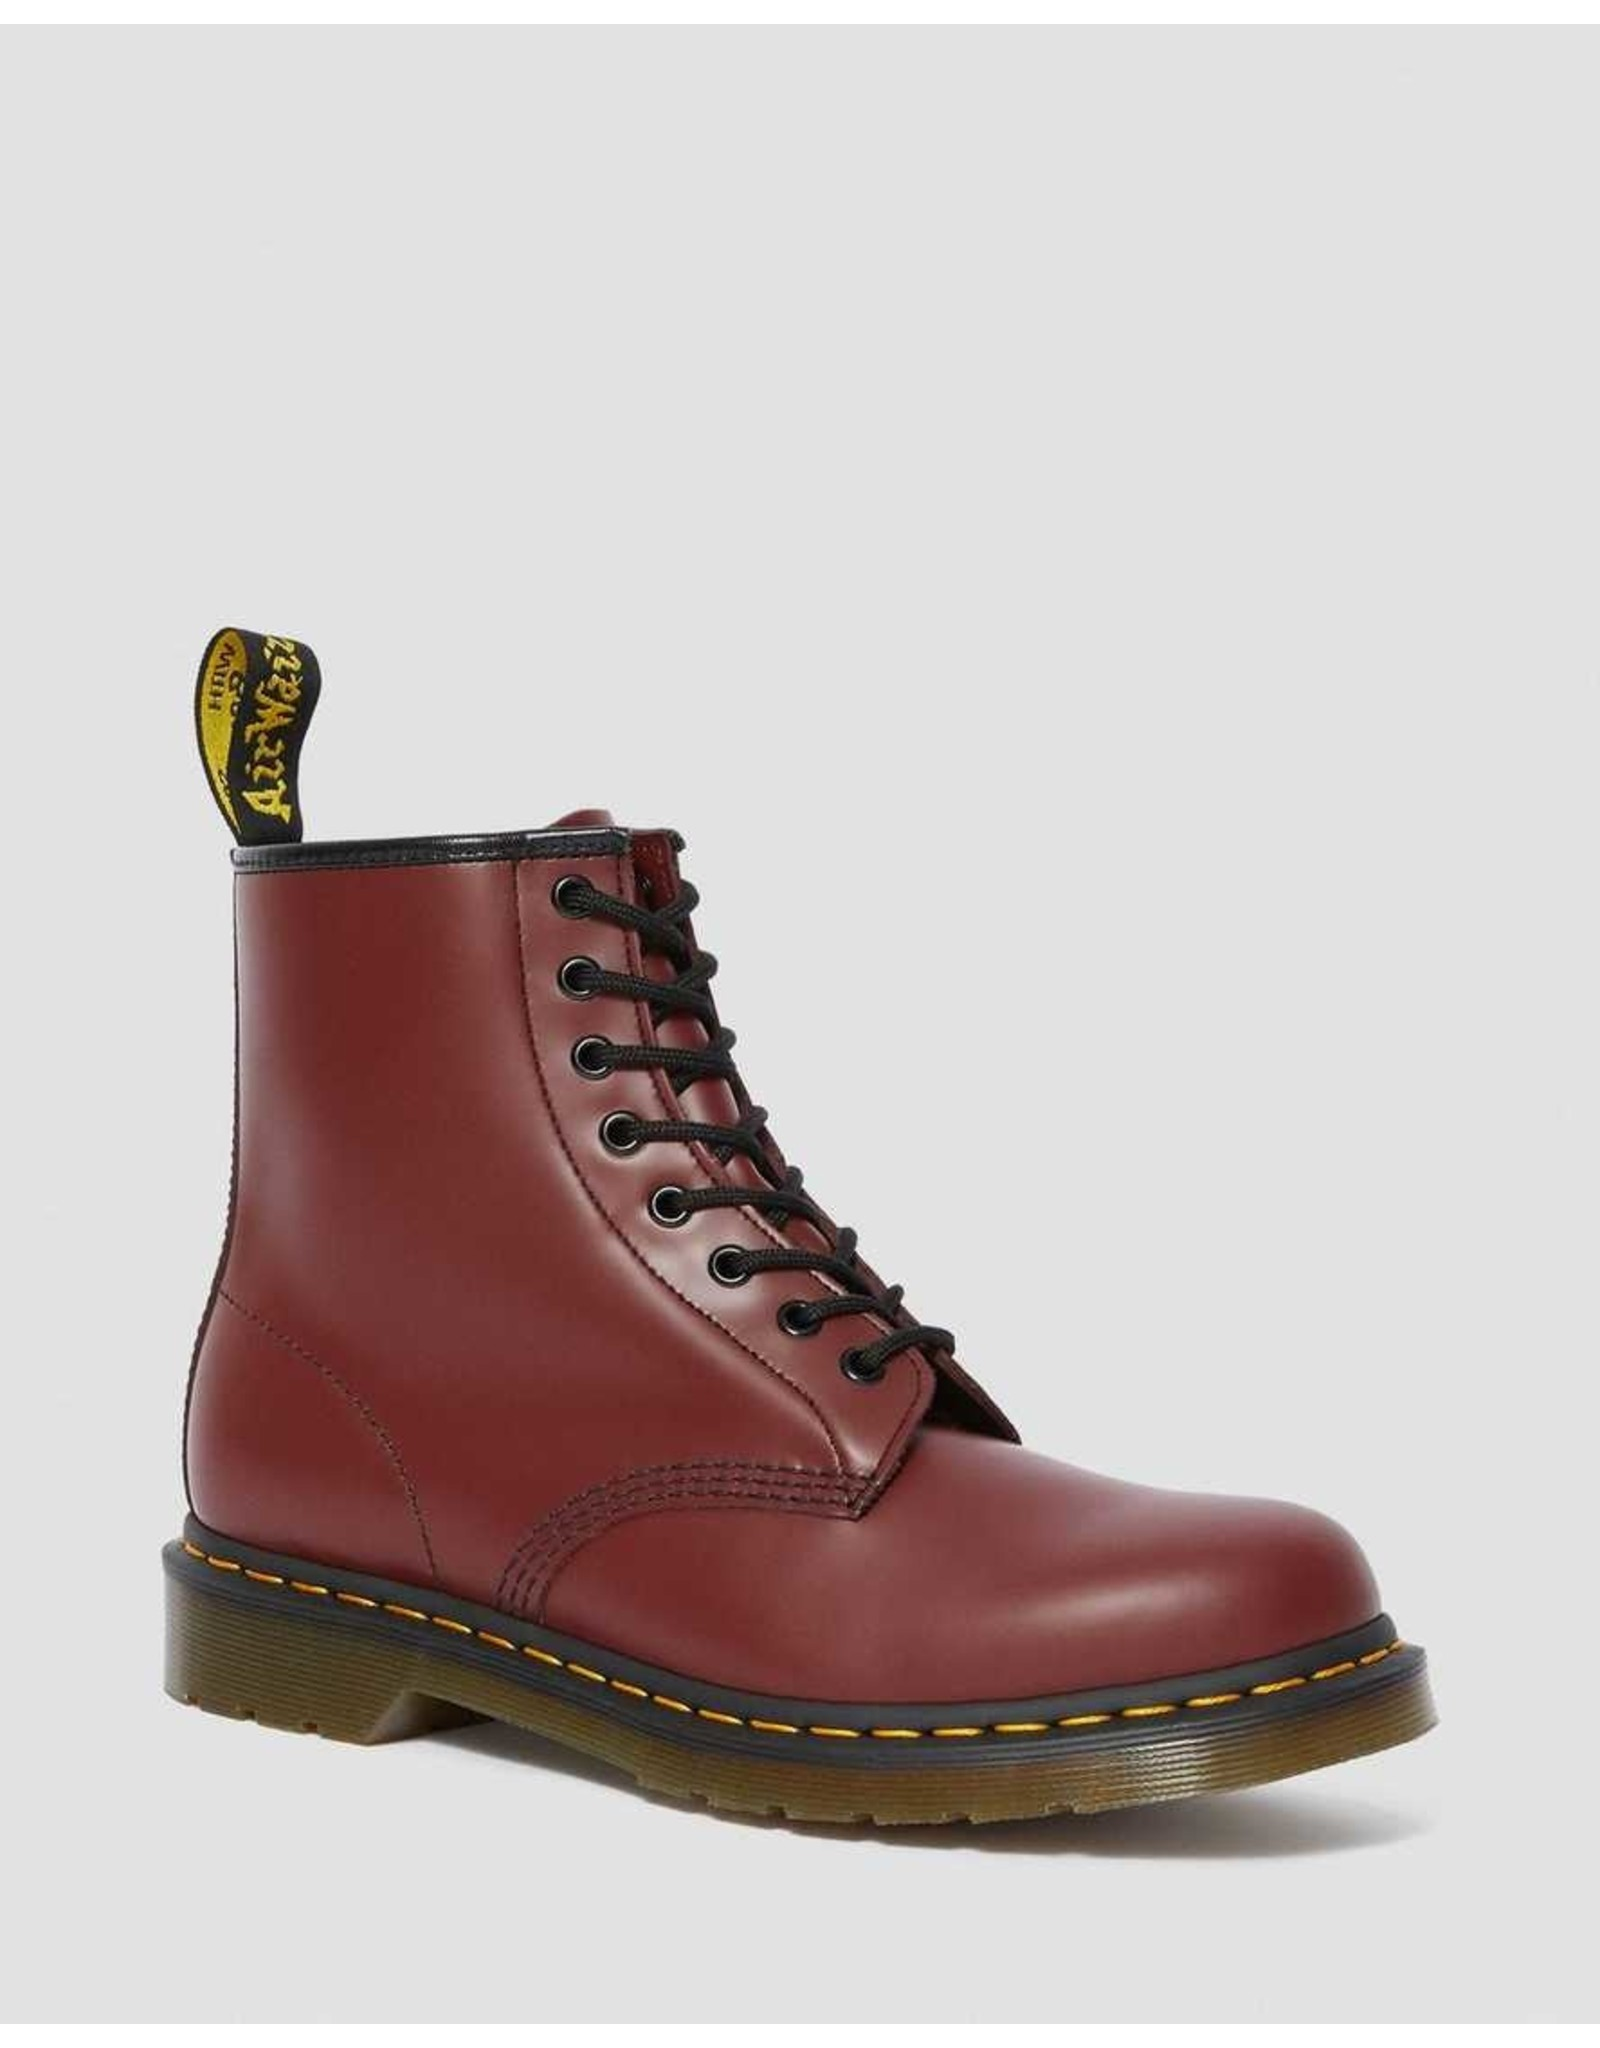 DR. MARTENS DR. MARTENS SMOOTH LEATHER OXFORD SHOES